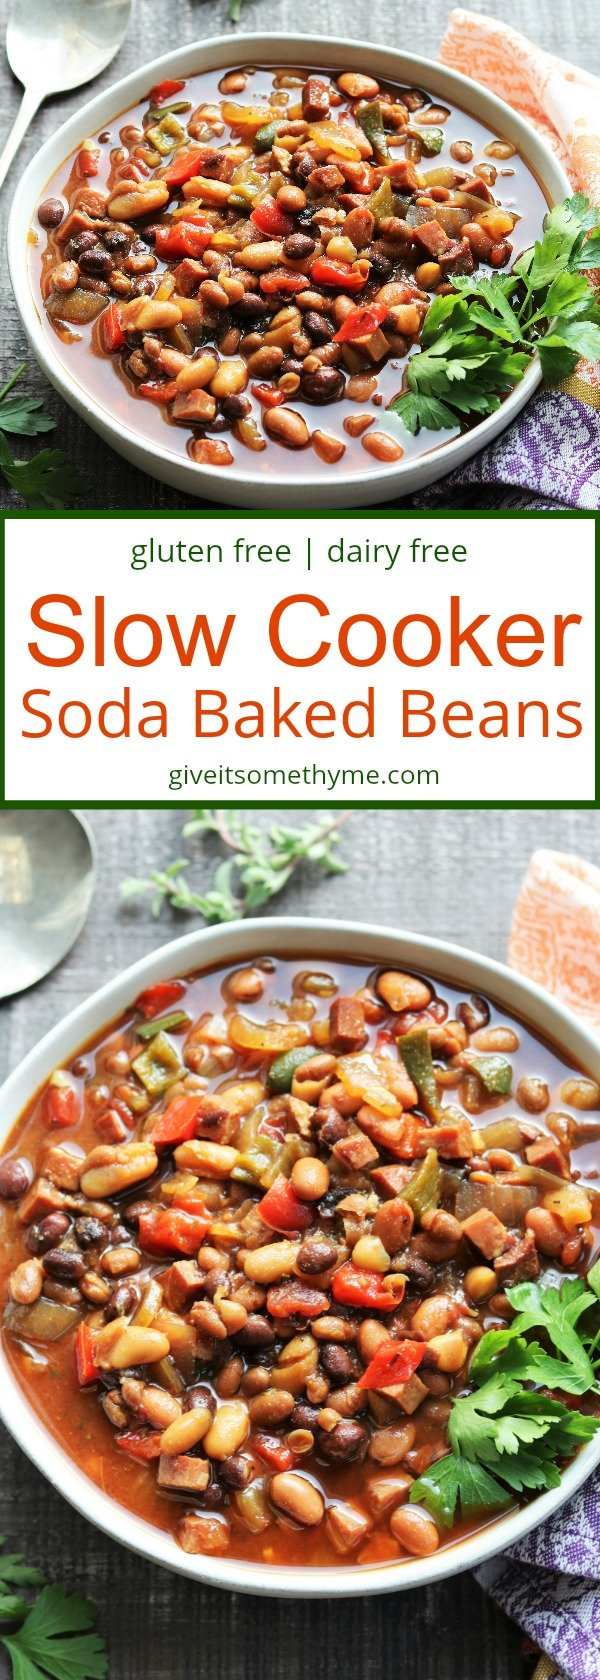 Slow Cooker Soda Baked Beans | Give it Some Thyme